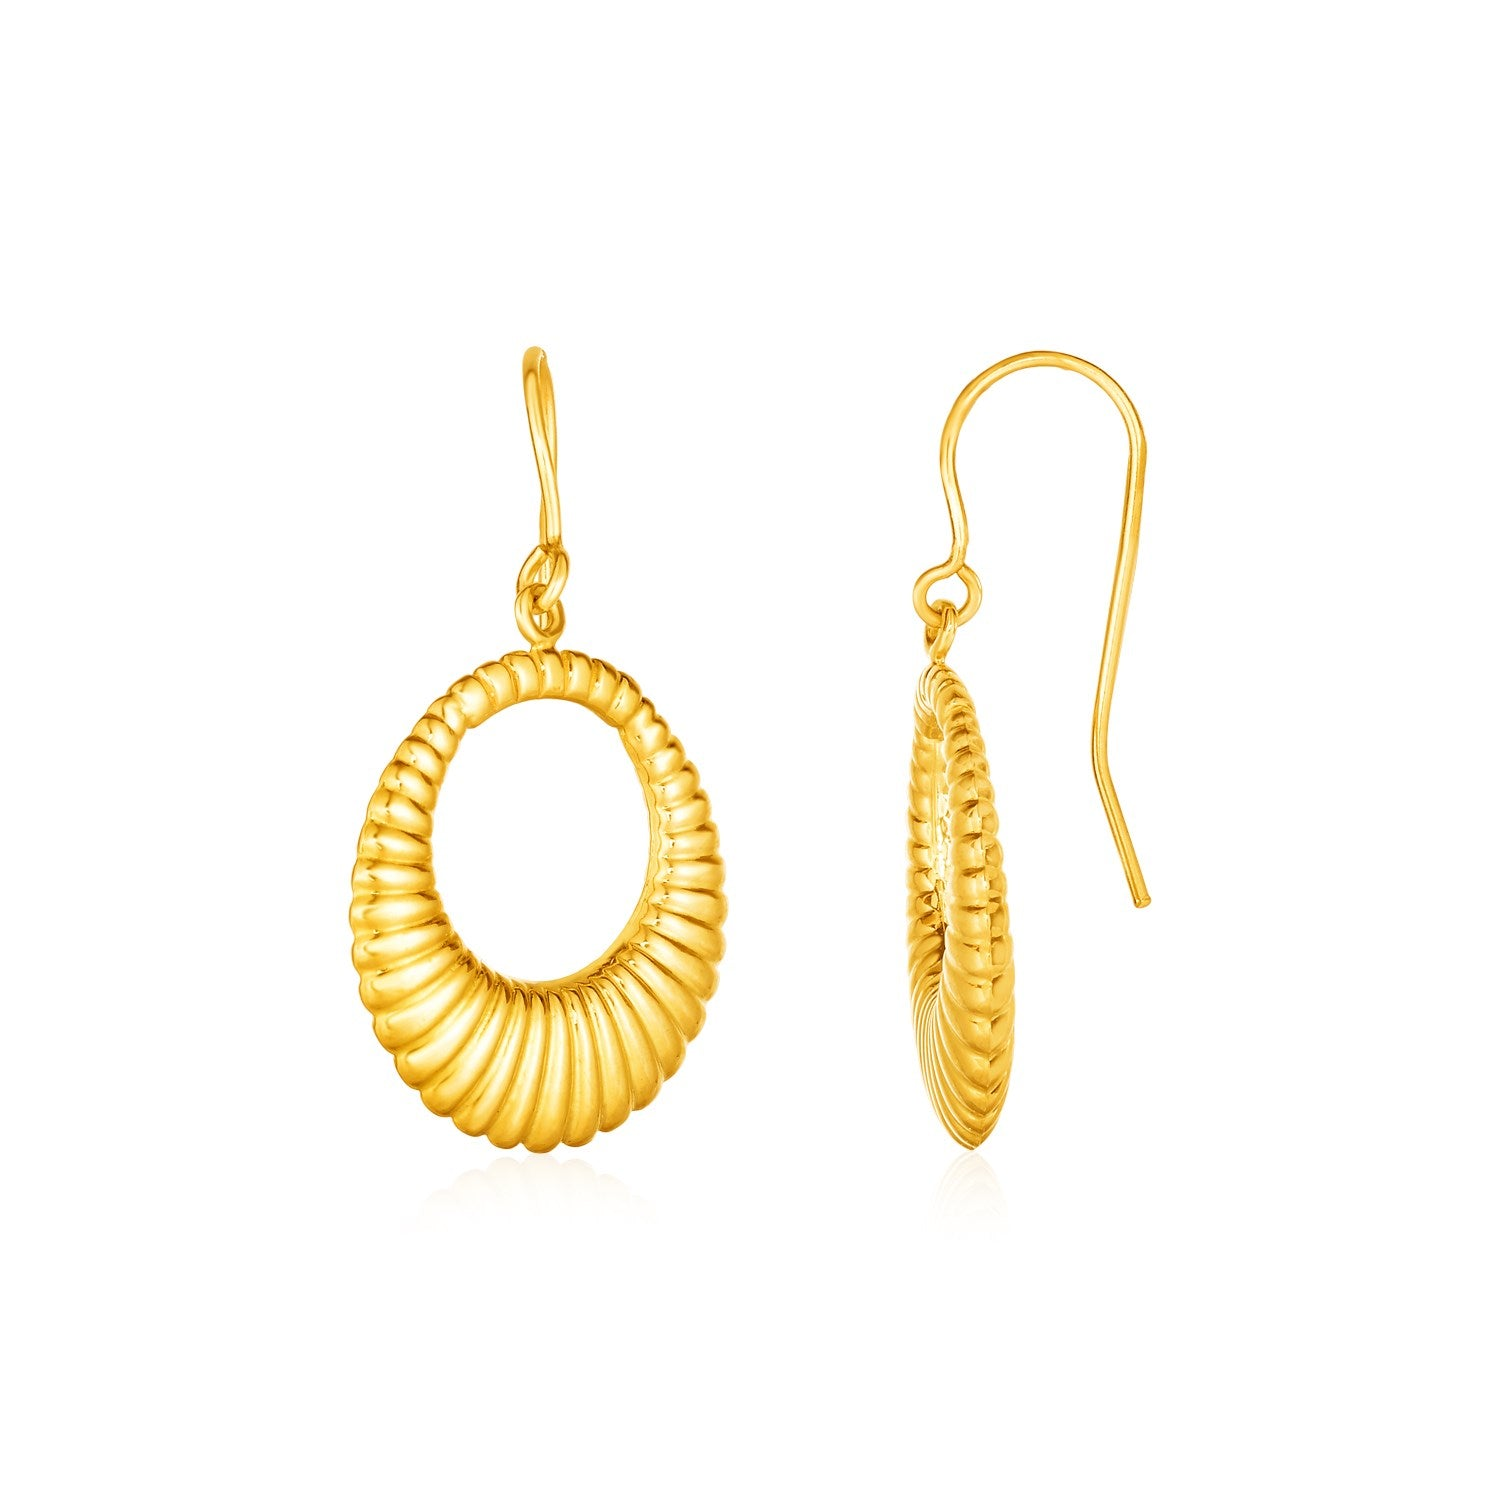 Open Ridged Oval Earrings in 10K Yellow Gold